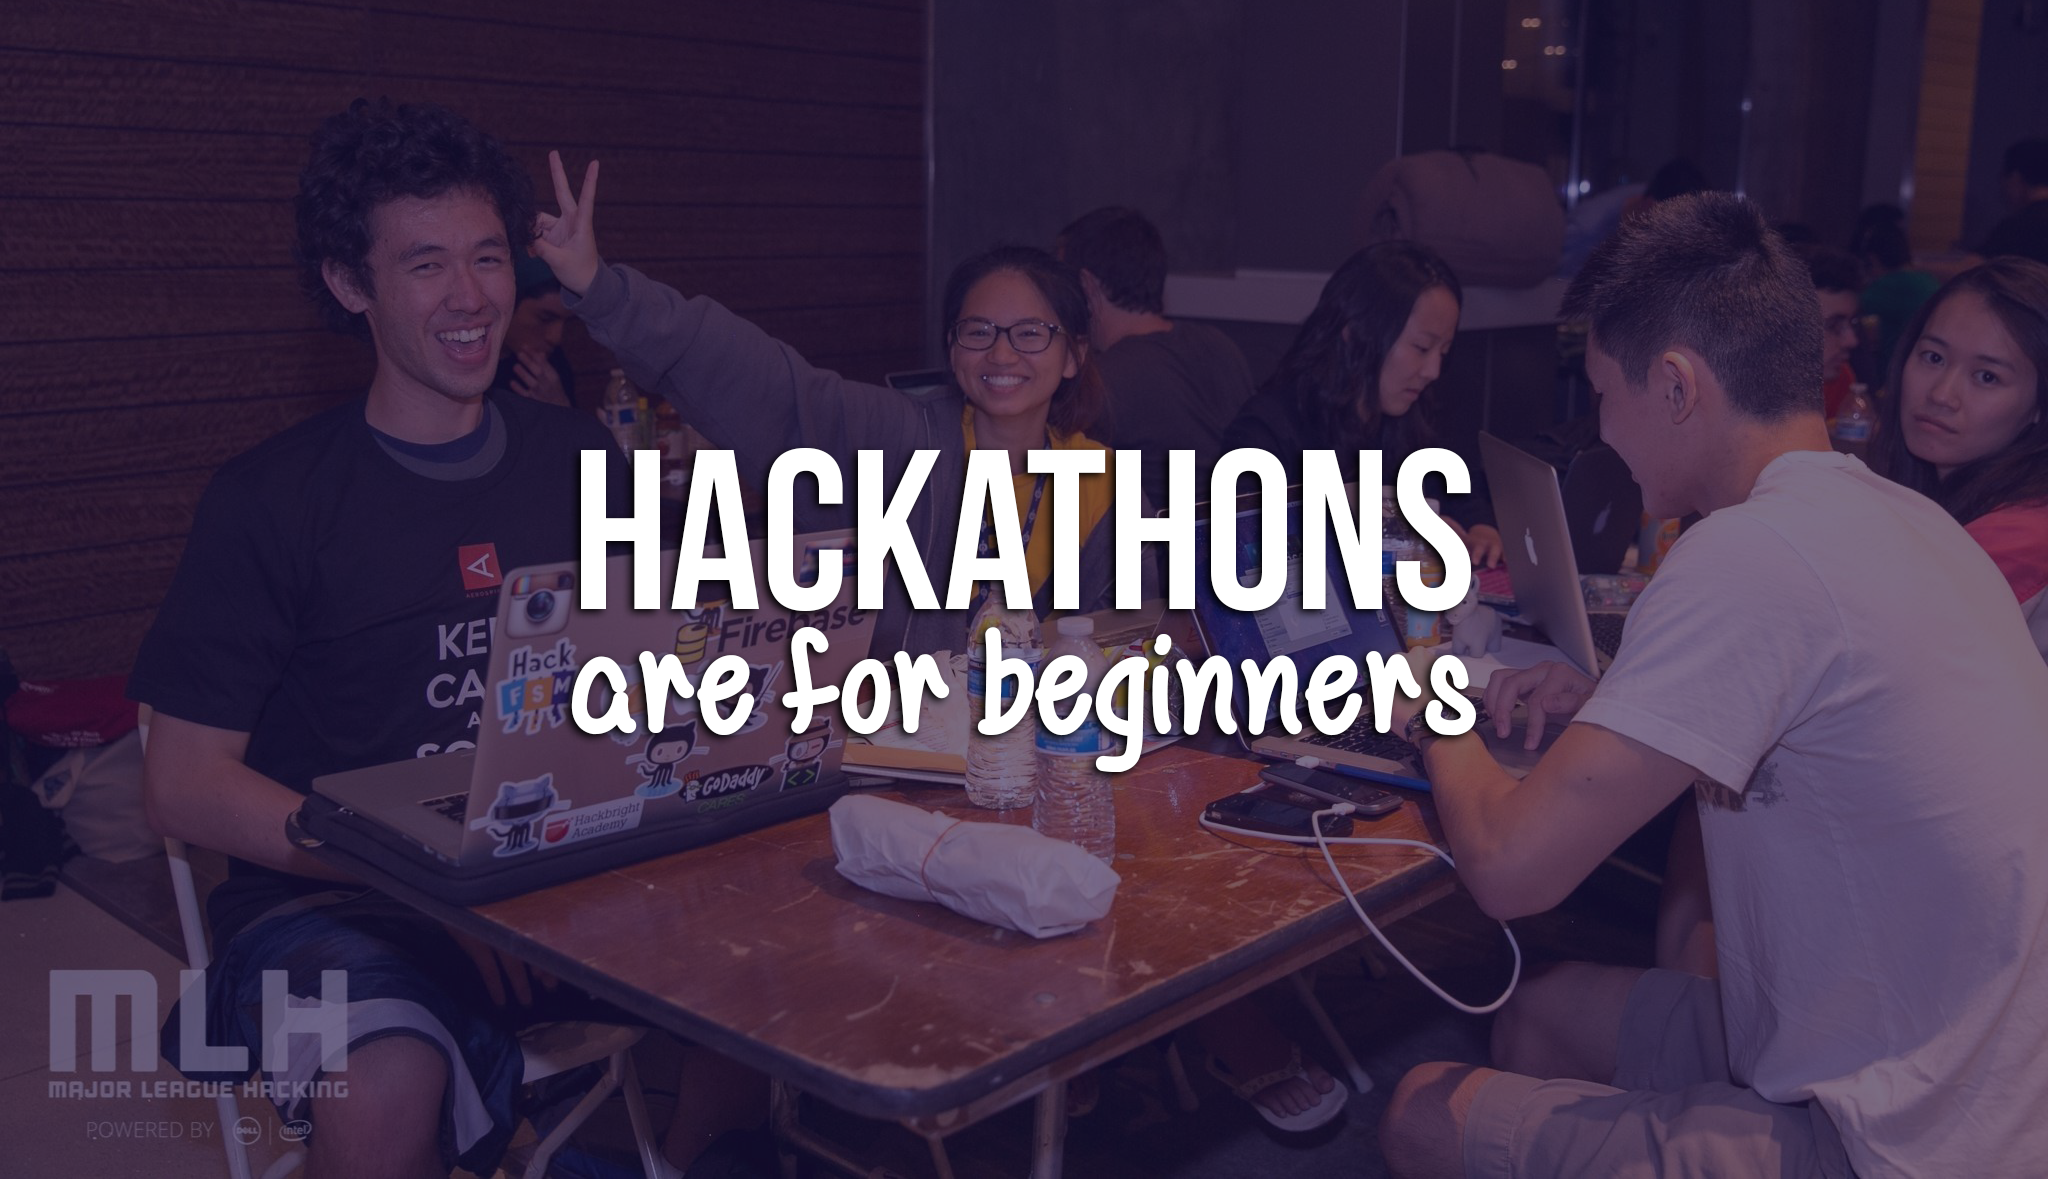 371bbd7535b Hackathons are for beginners – tfogo – Medium